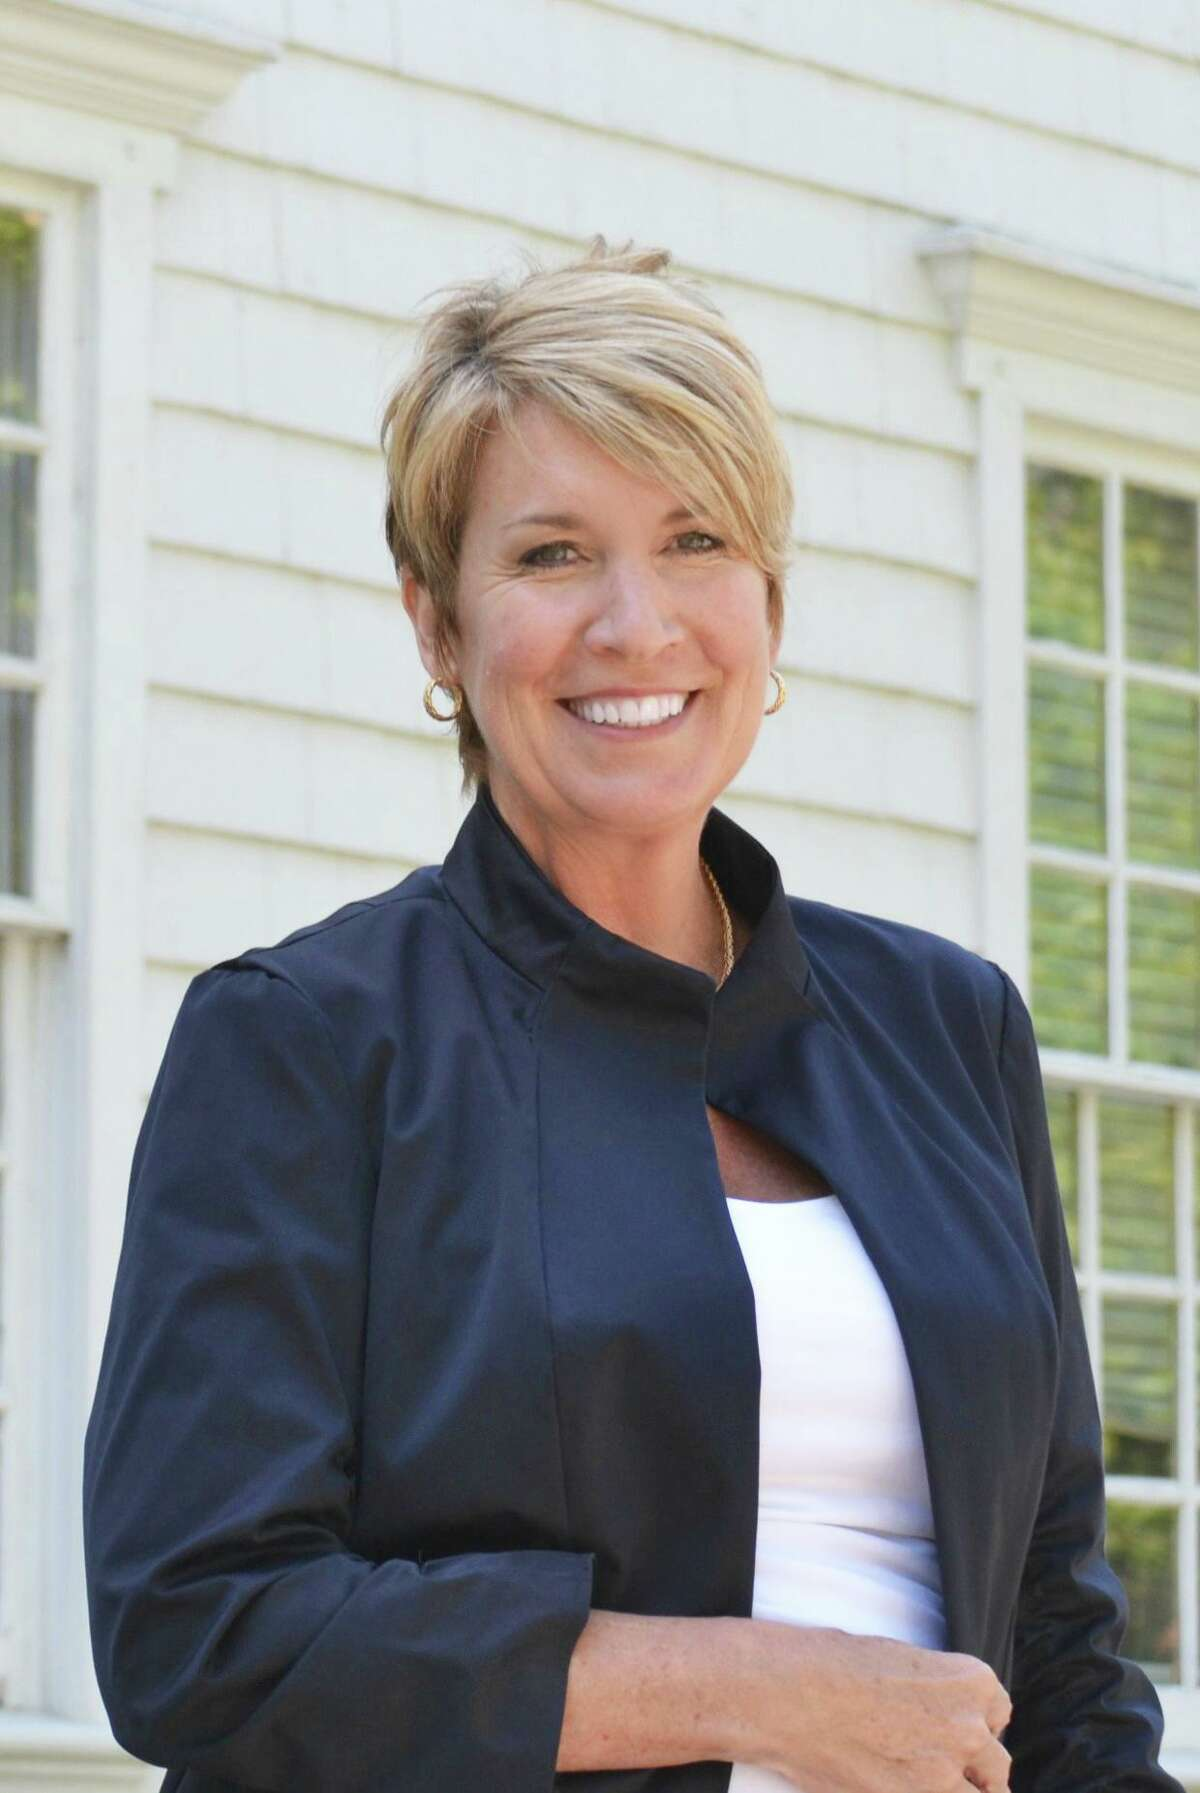 Connecticut state Representative Laura Devlin, (R-134), is having a public listening forum about juvenile crime from 7 until 9 p.m., Sept. 13, at the Sacred Heart University Community Theatre, which is located at 1420 Post Road in downtown Fairfield.